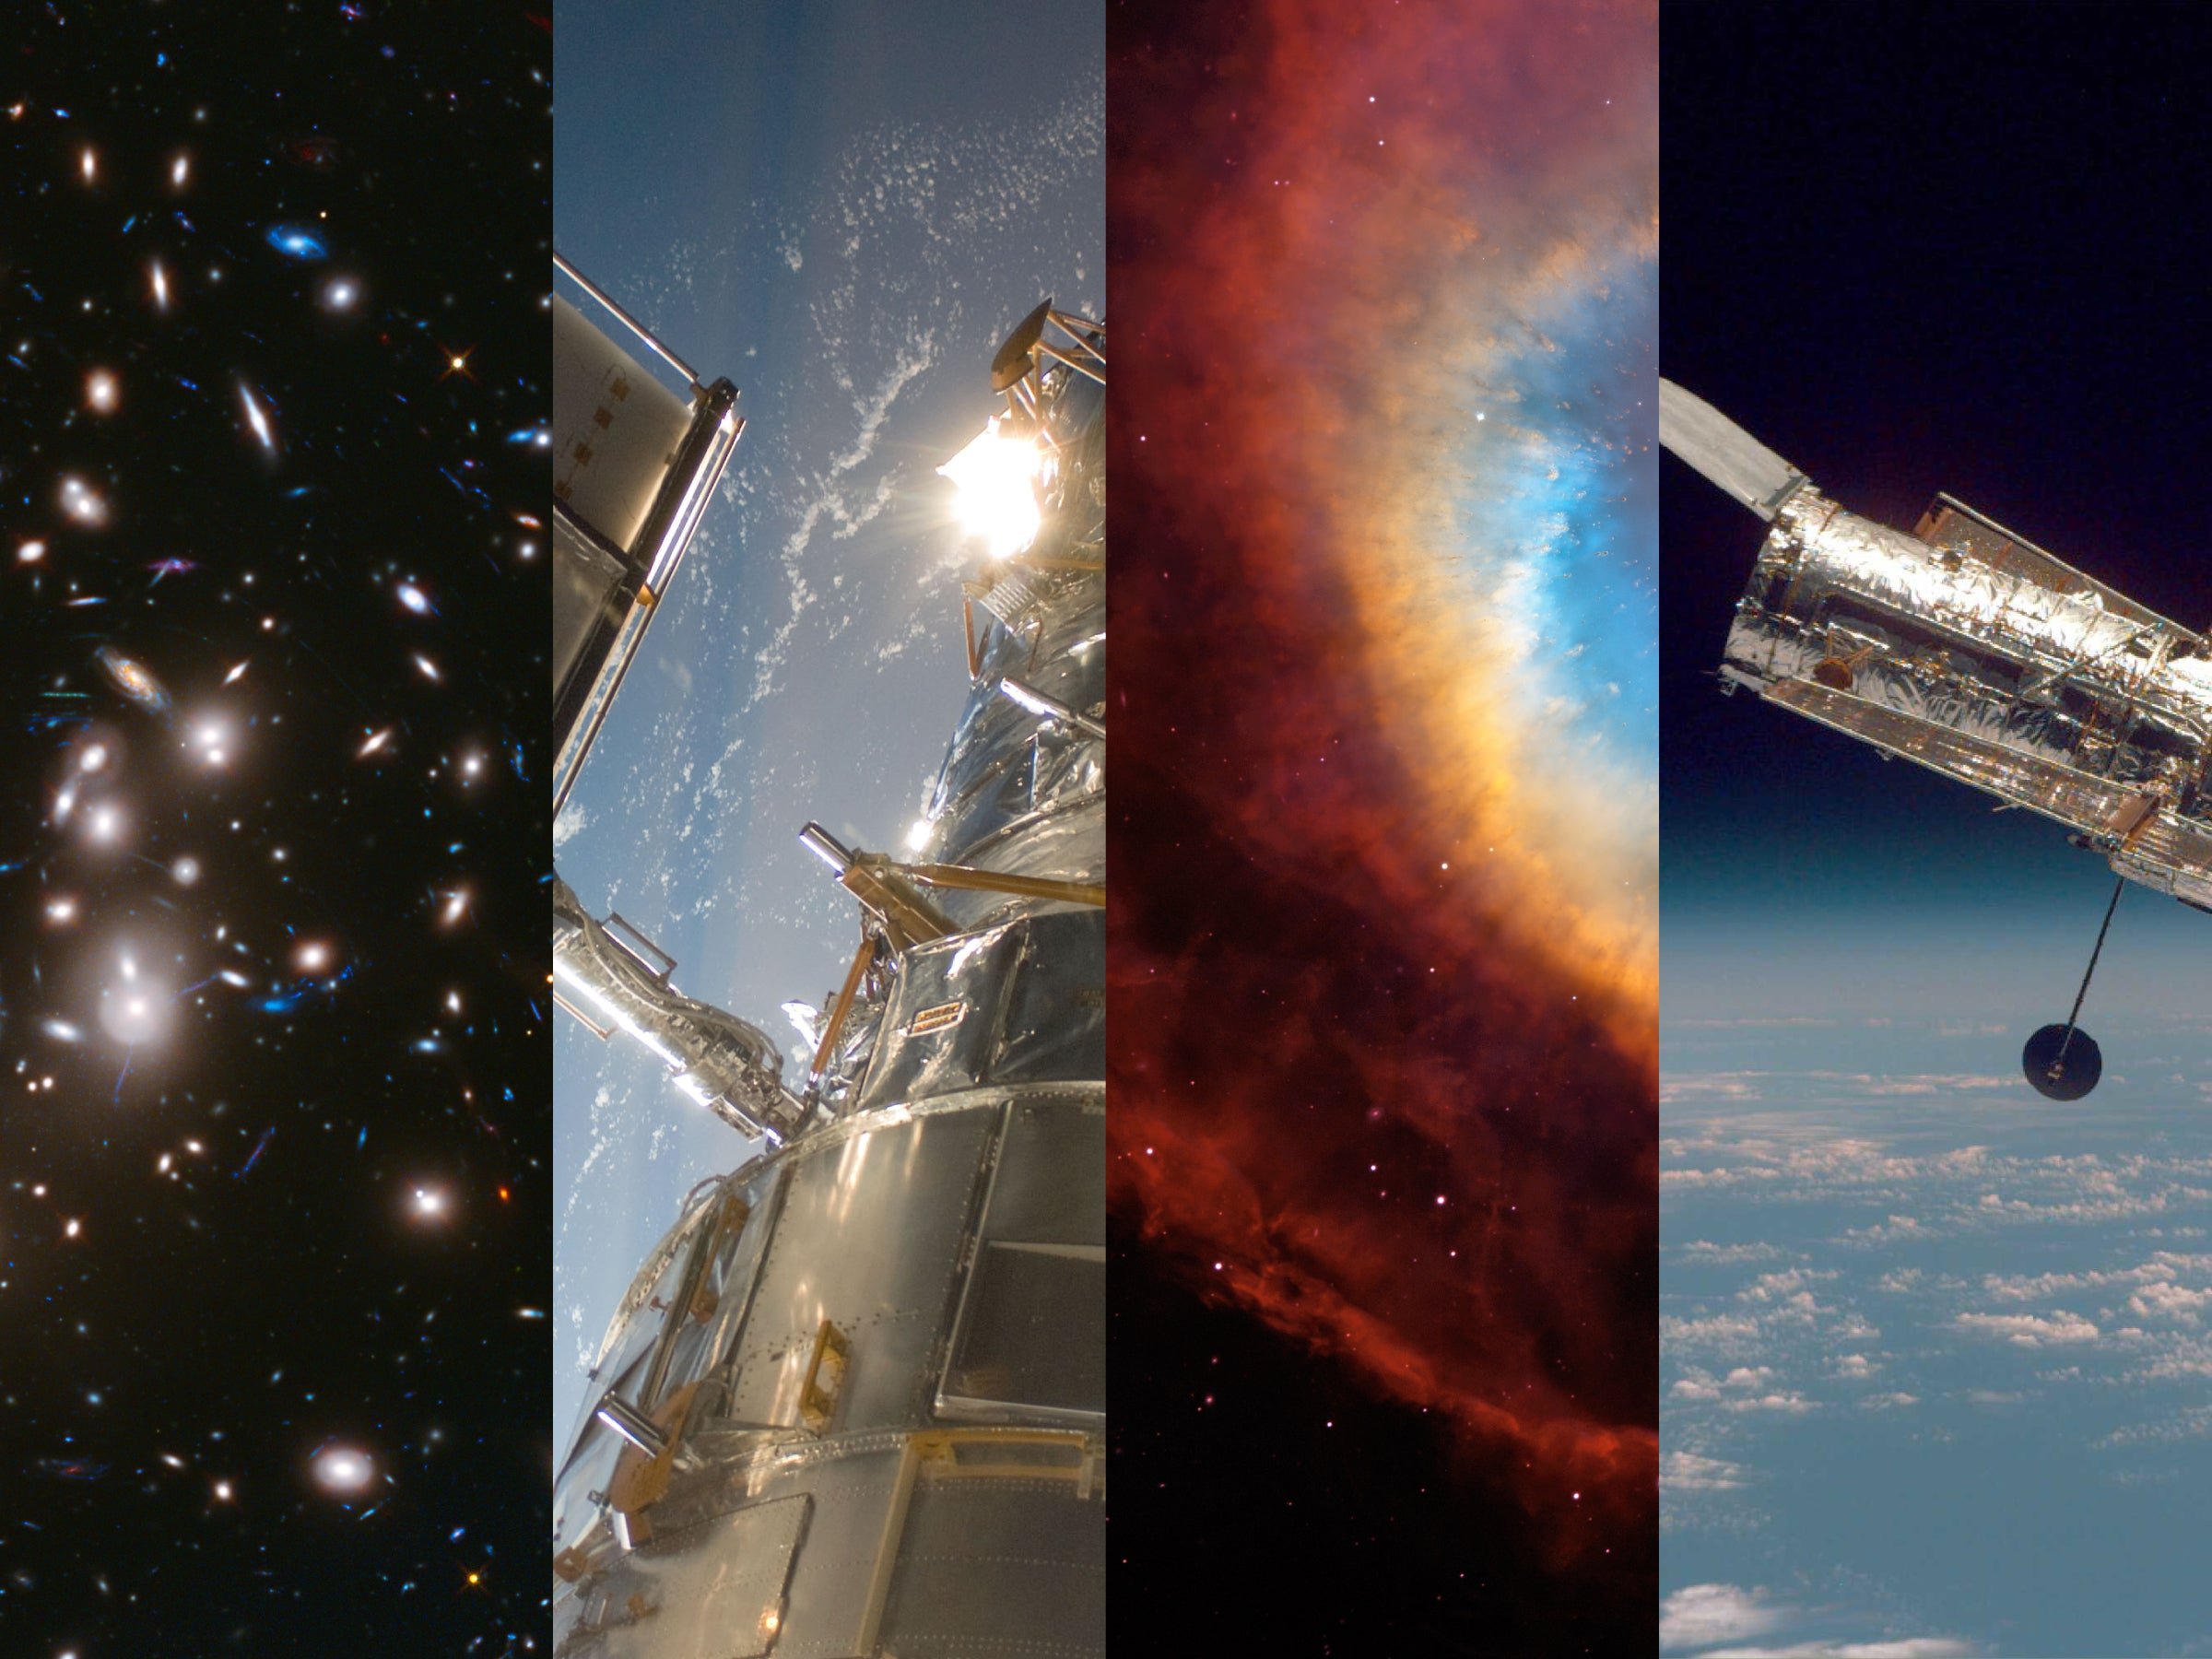 Celebrate Hubble's 25th Birthday With 26 Of Its Most Gorgeous Images